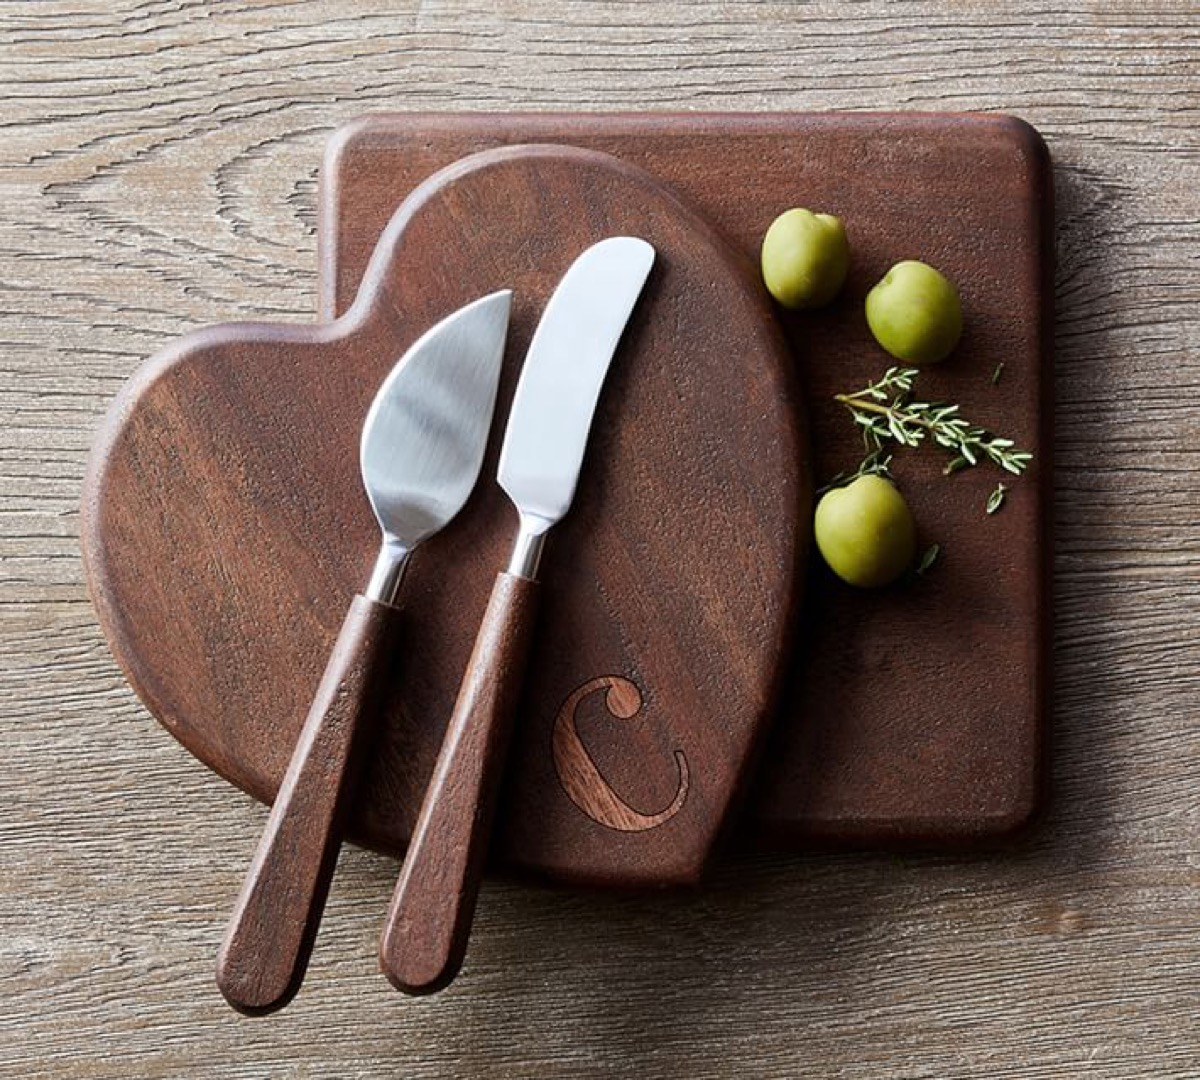 square and heart-shaped wooden cutting boards with cheese knives on top